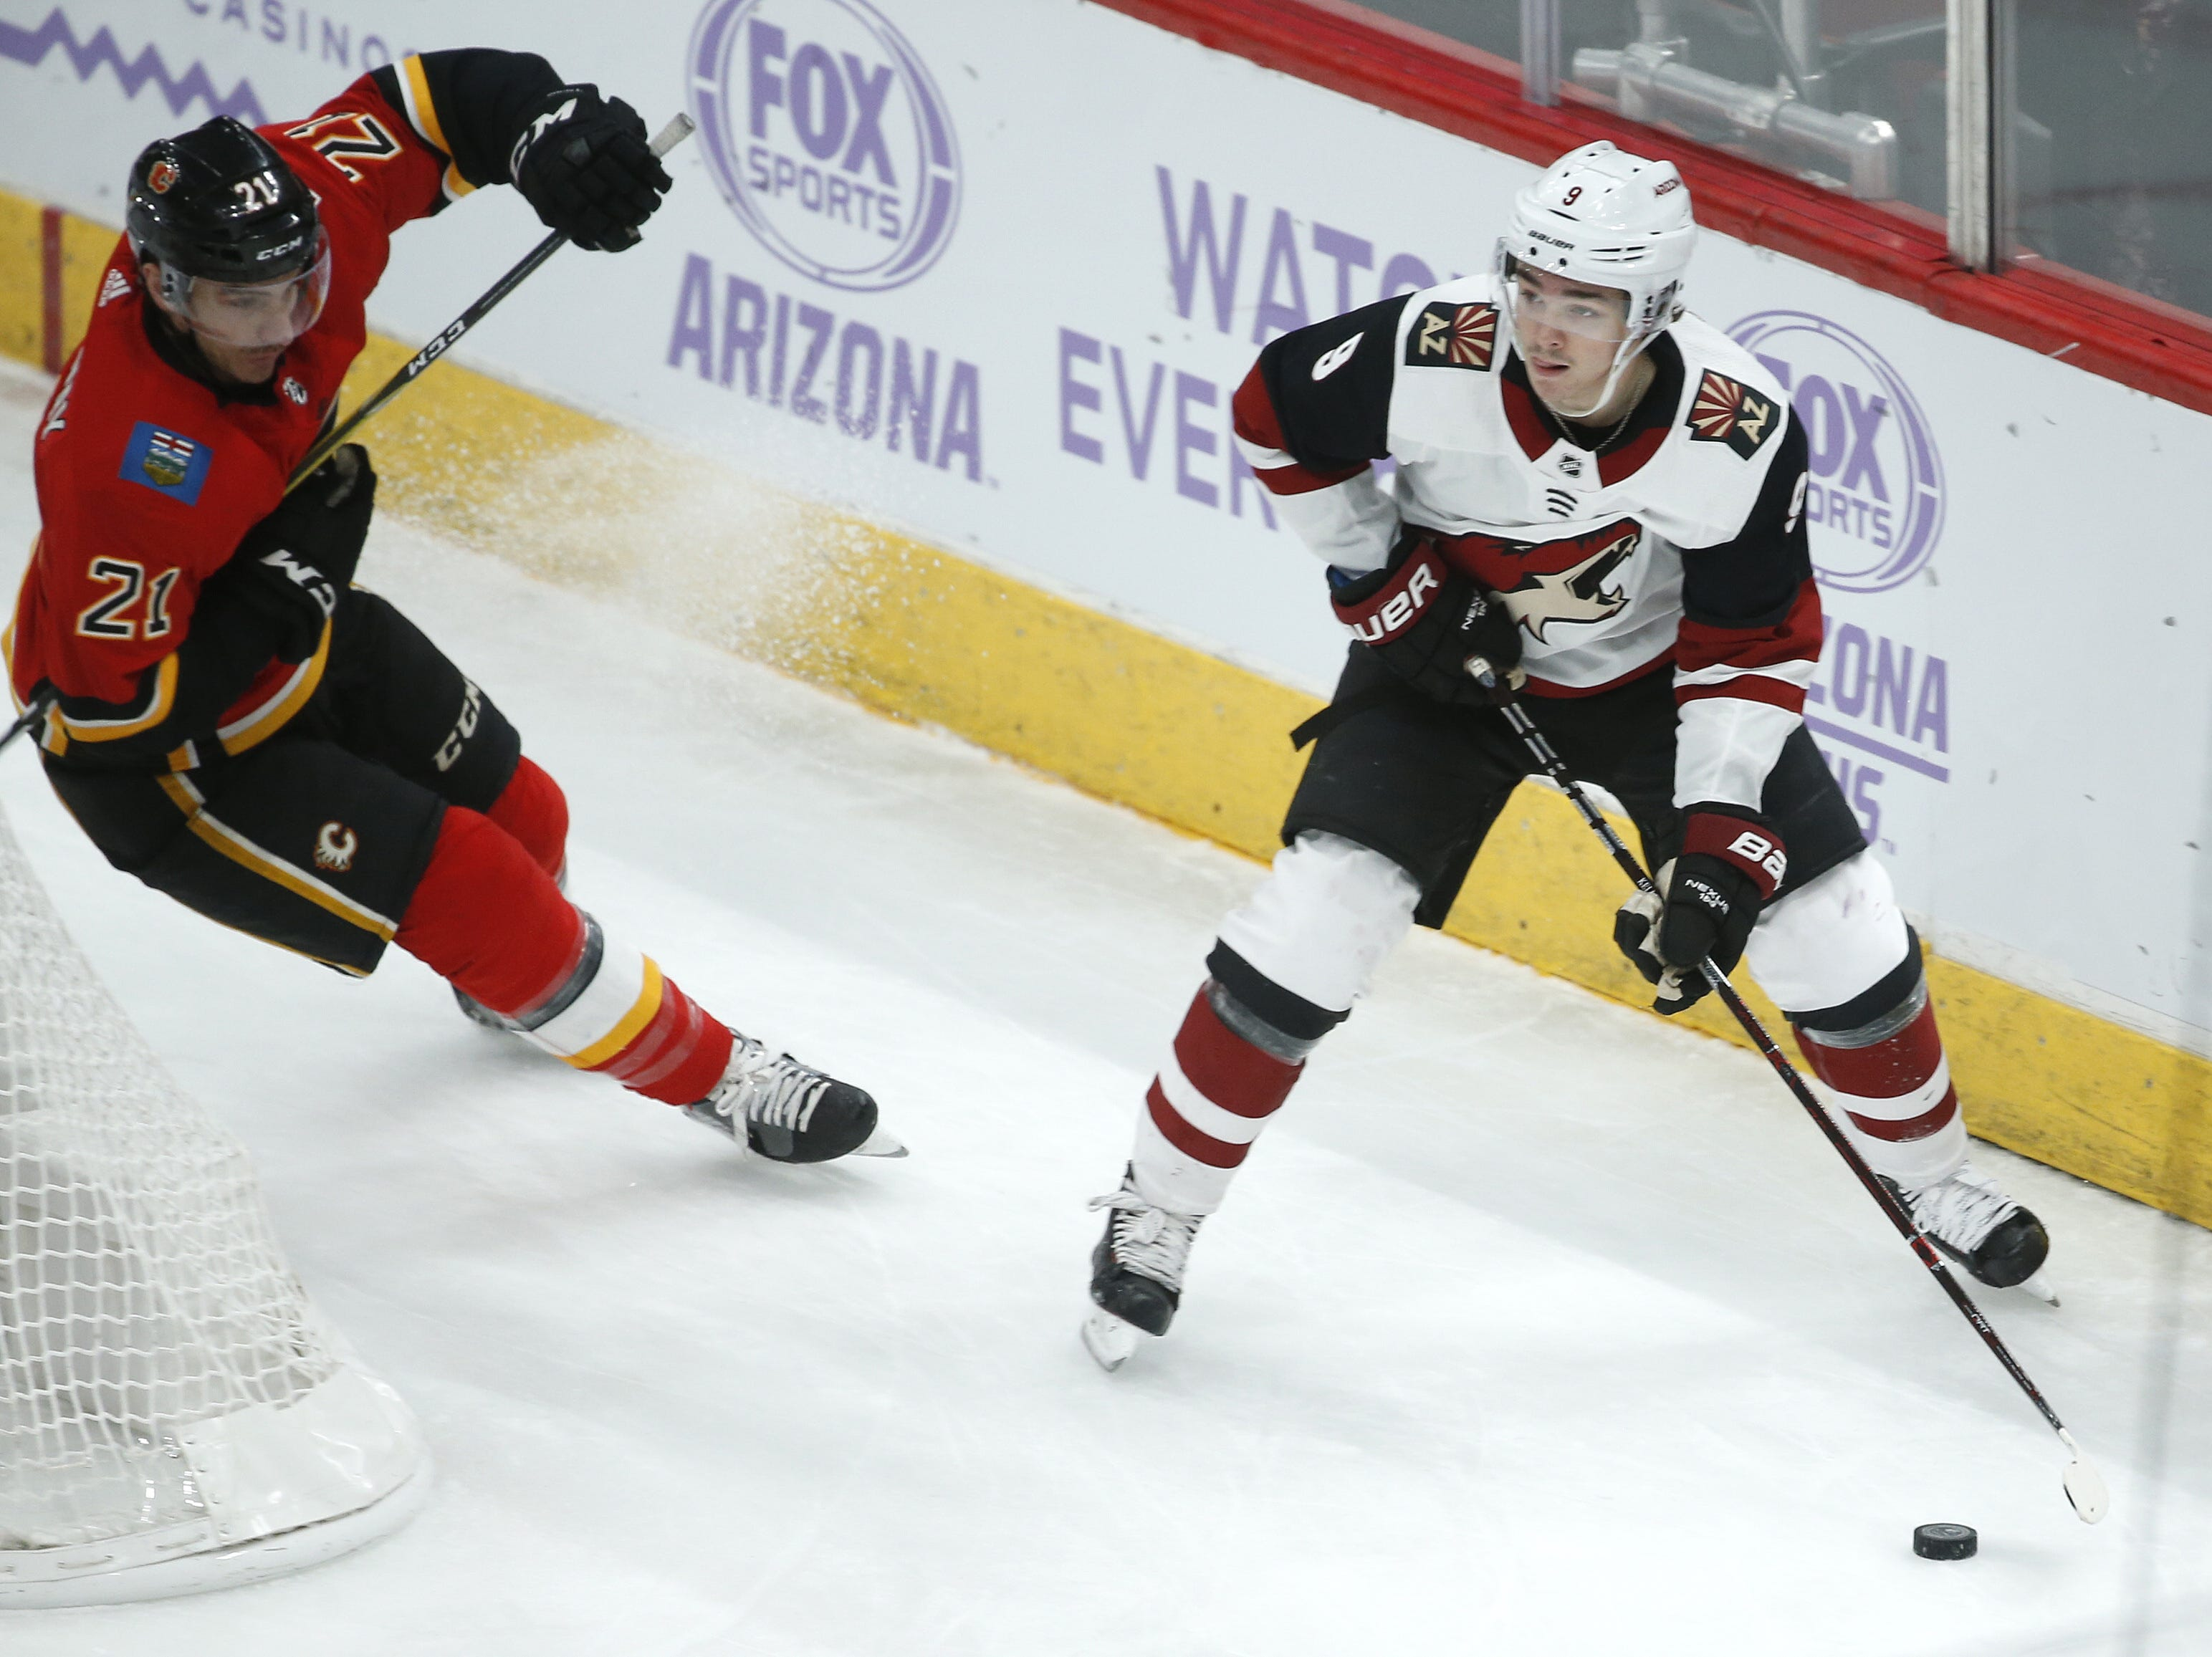 Coyotes' Clayton Keller (9) skates past Flames' Garnet Hathaway (21) during the first period at Gila River Arena in Glendale, Ariz. on November 25, 2018.